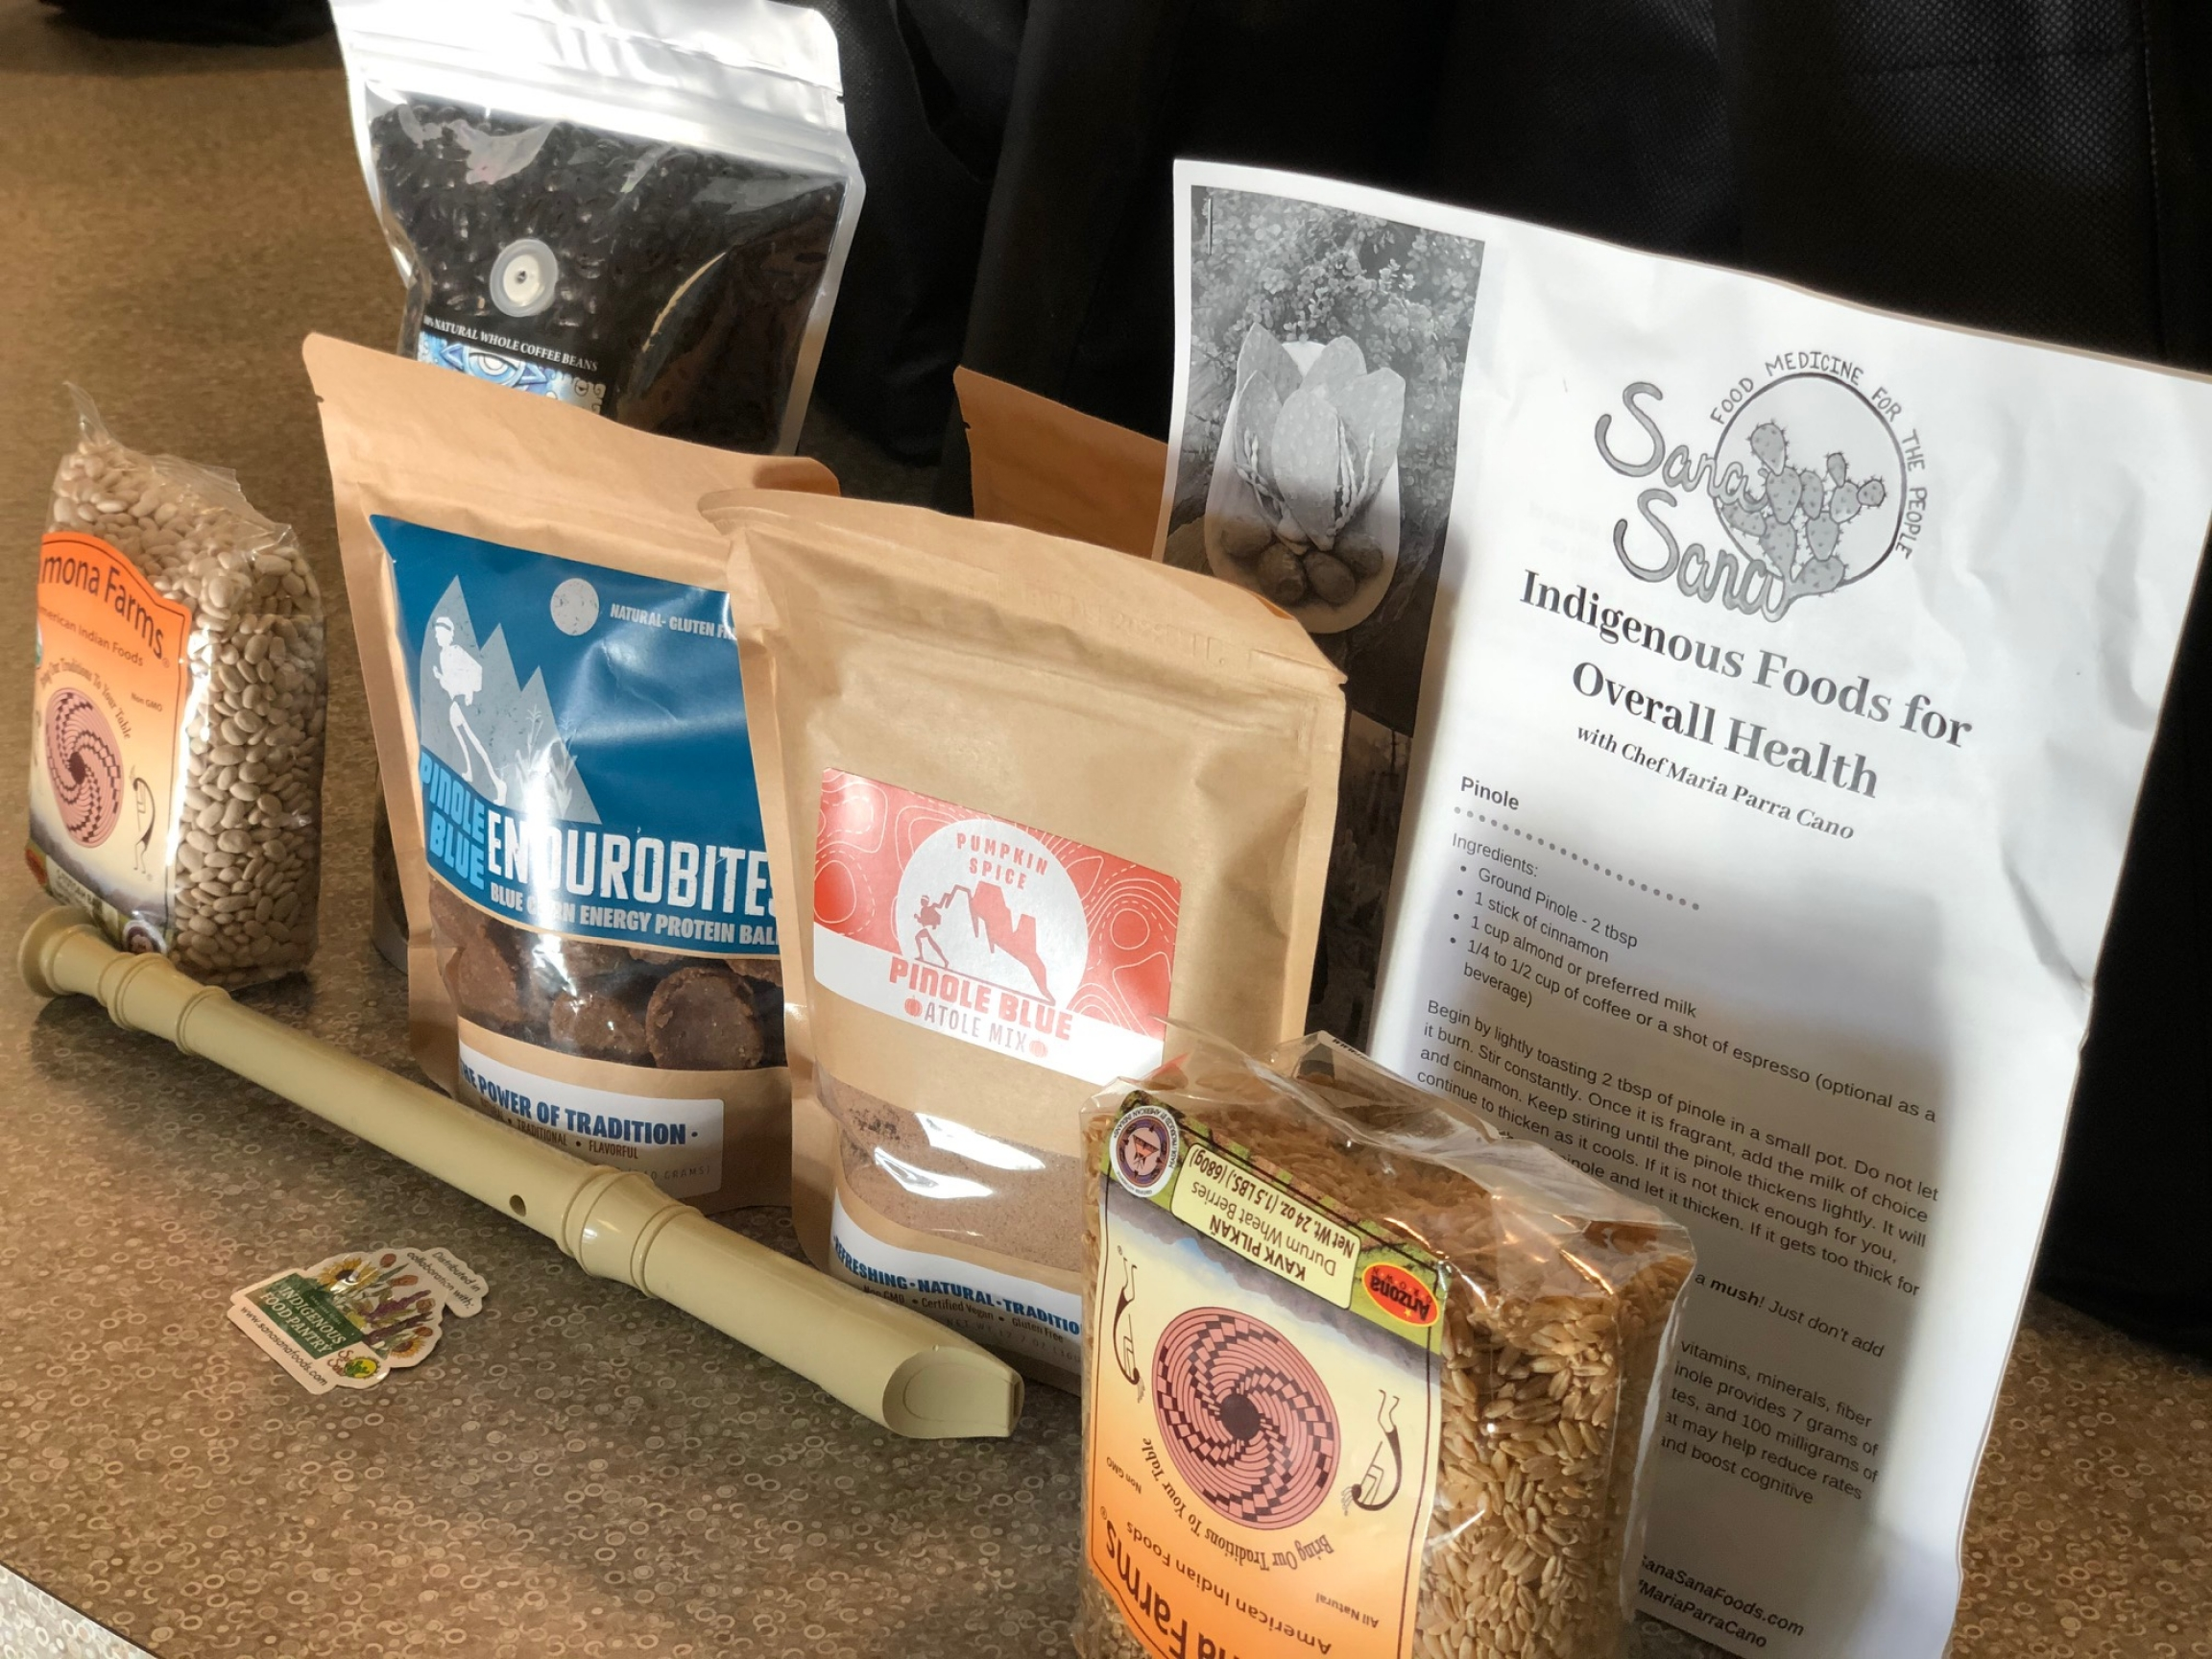 The food care packages distributed by the Cihuapactli Collective contain Indigenous products that are organic and fair trade.